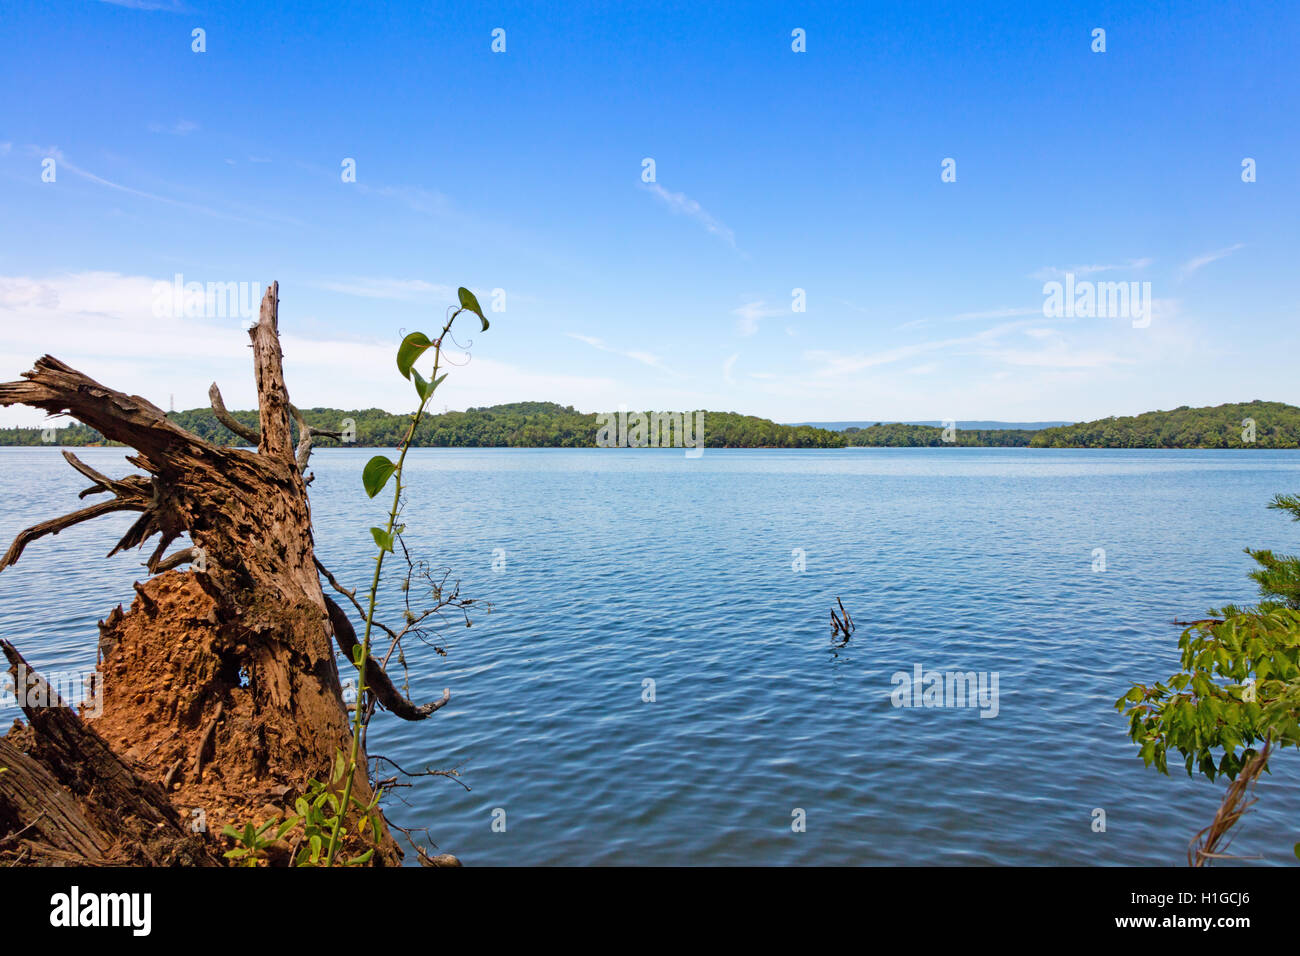 Piney River Shoals near Watts Bar Dam in Meigs county, Tennessee - Stock Image